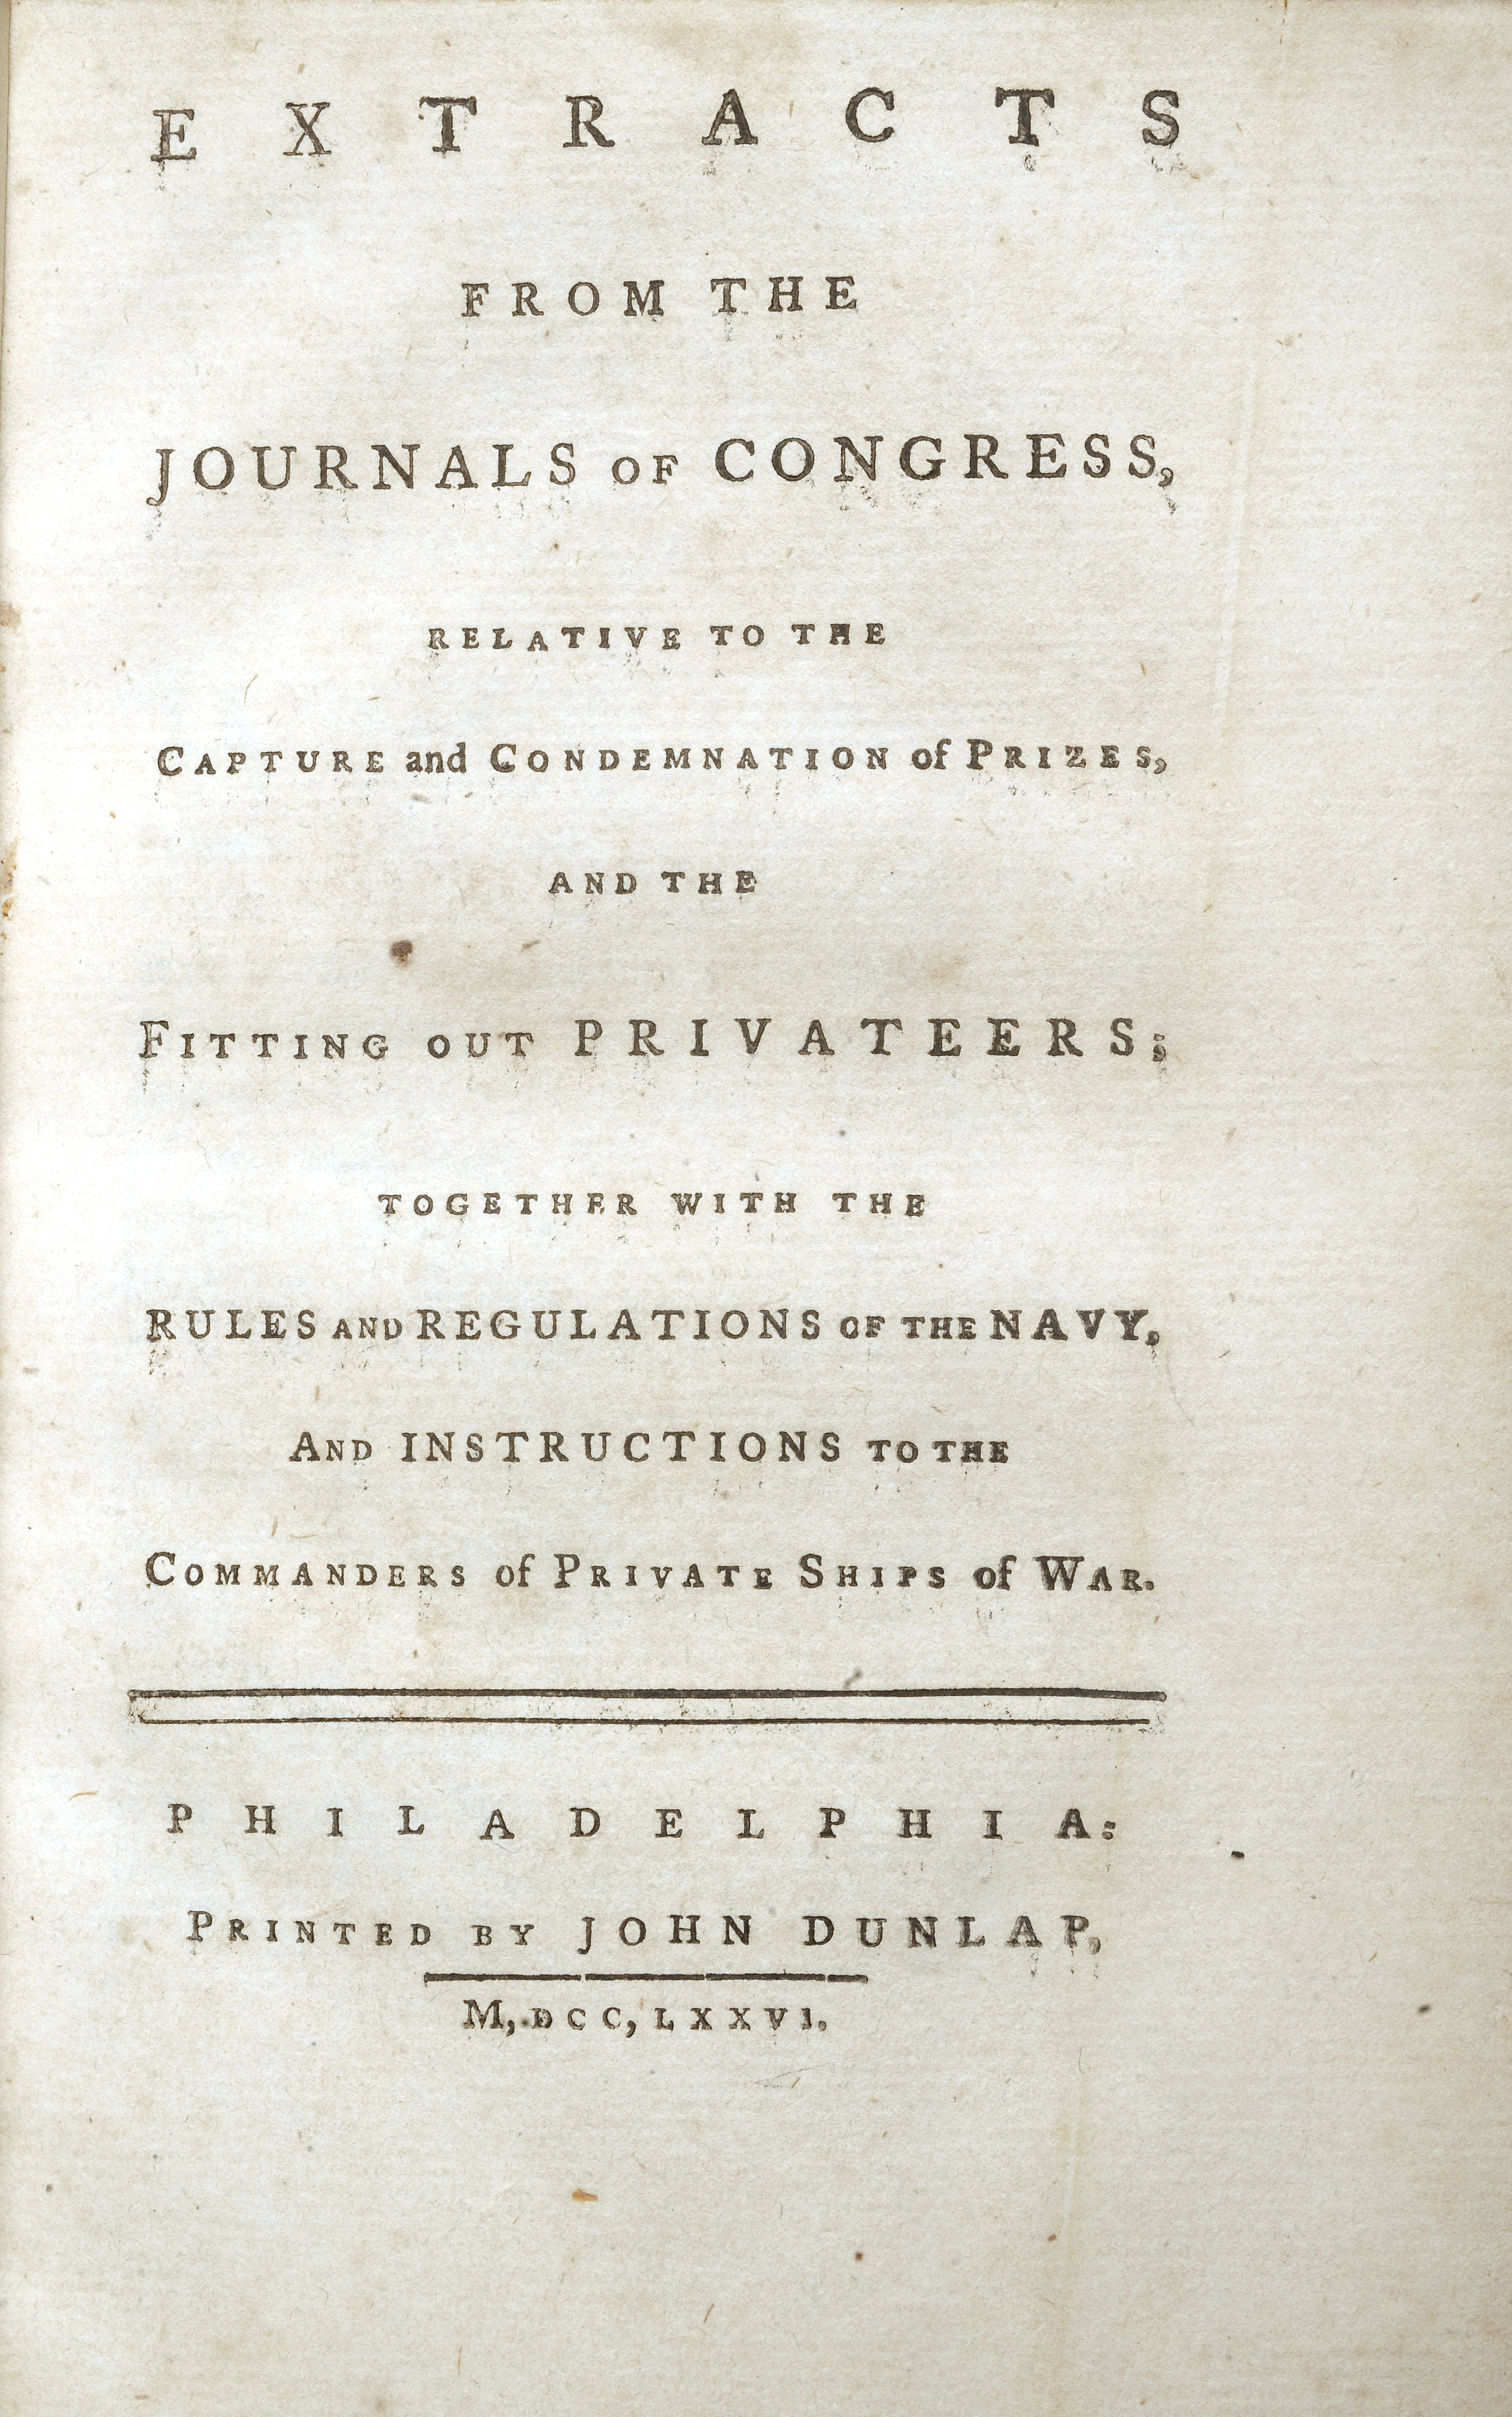 Extracts from the Journals of Congress, Relative to the Capture and Condemnation of Prizes, and the Fitting Out Privateers; together with the Rules and Regulations of the Navy, and Instructions to the Commanders of Private Ships of War, Philadelphia: Printed by John Dunlap, 1776